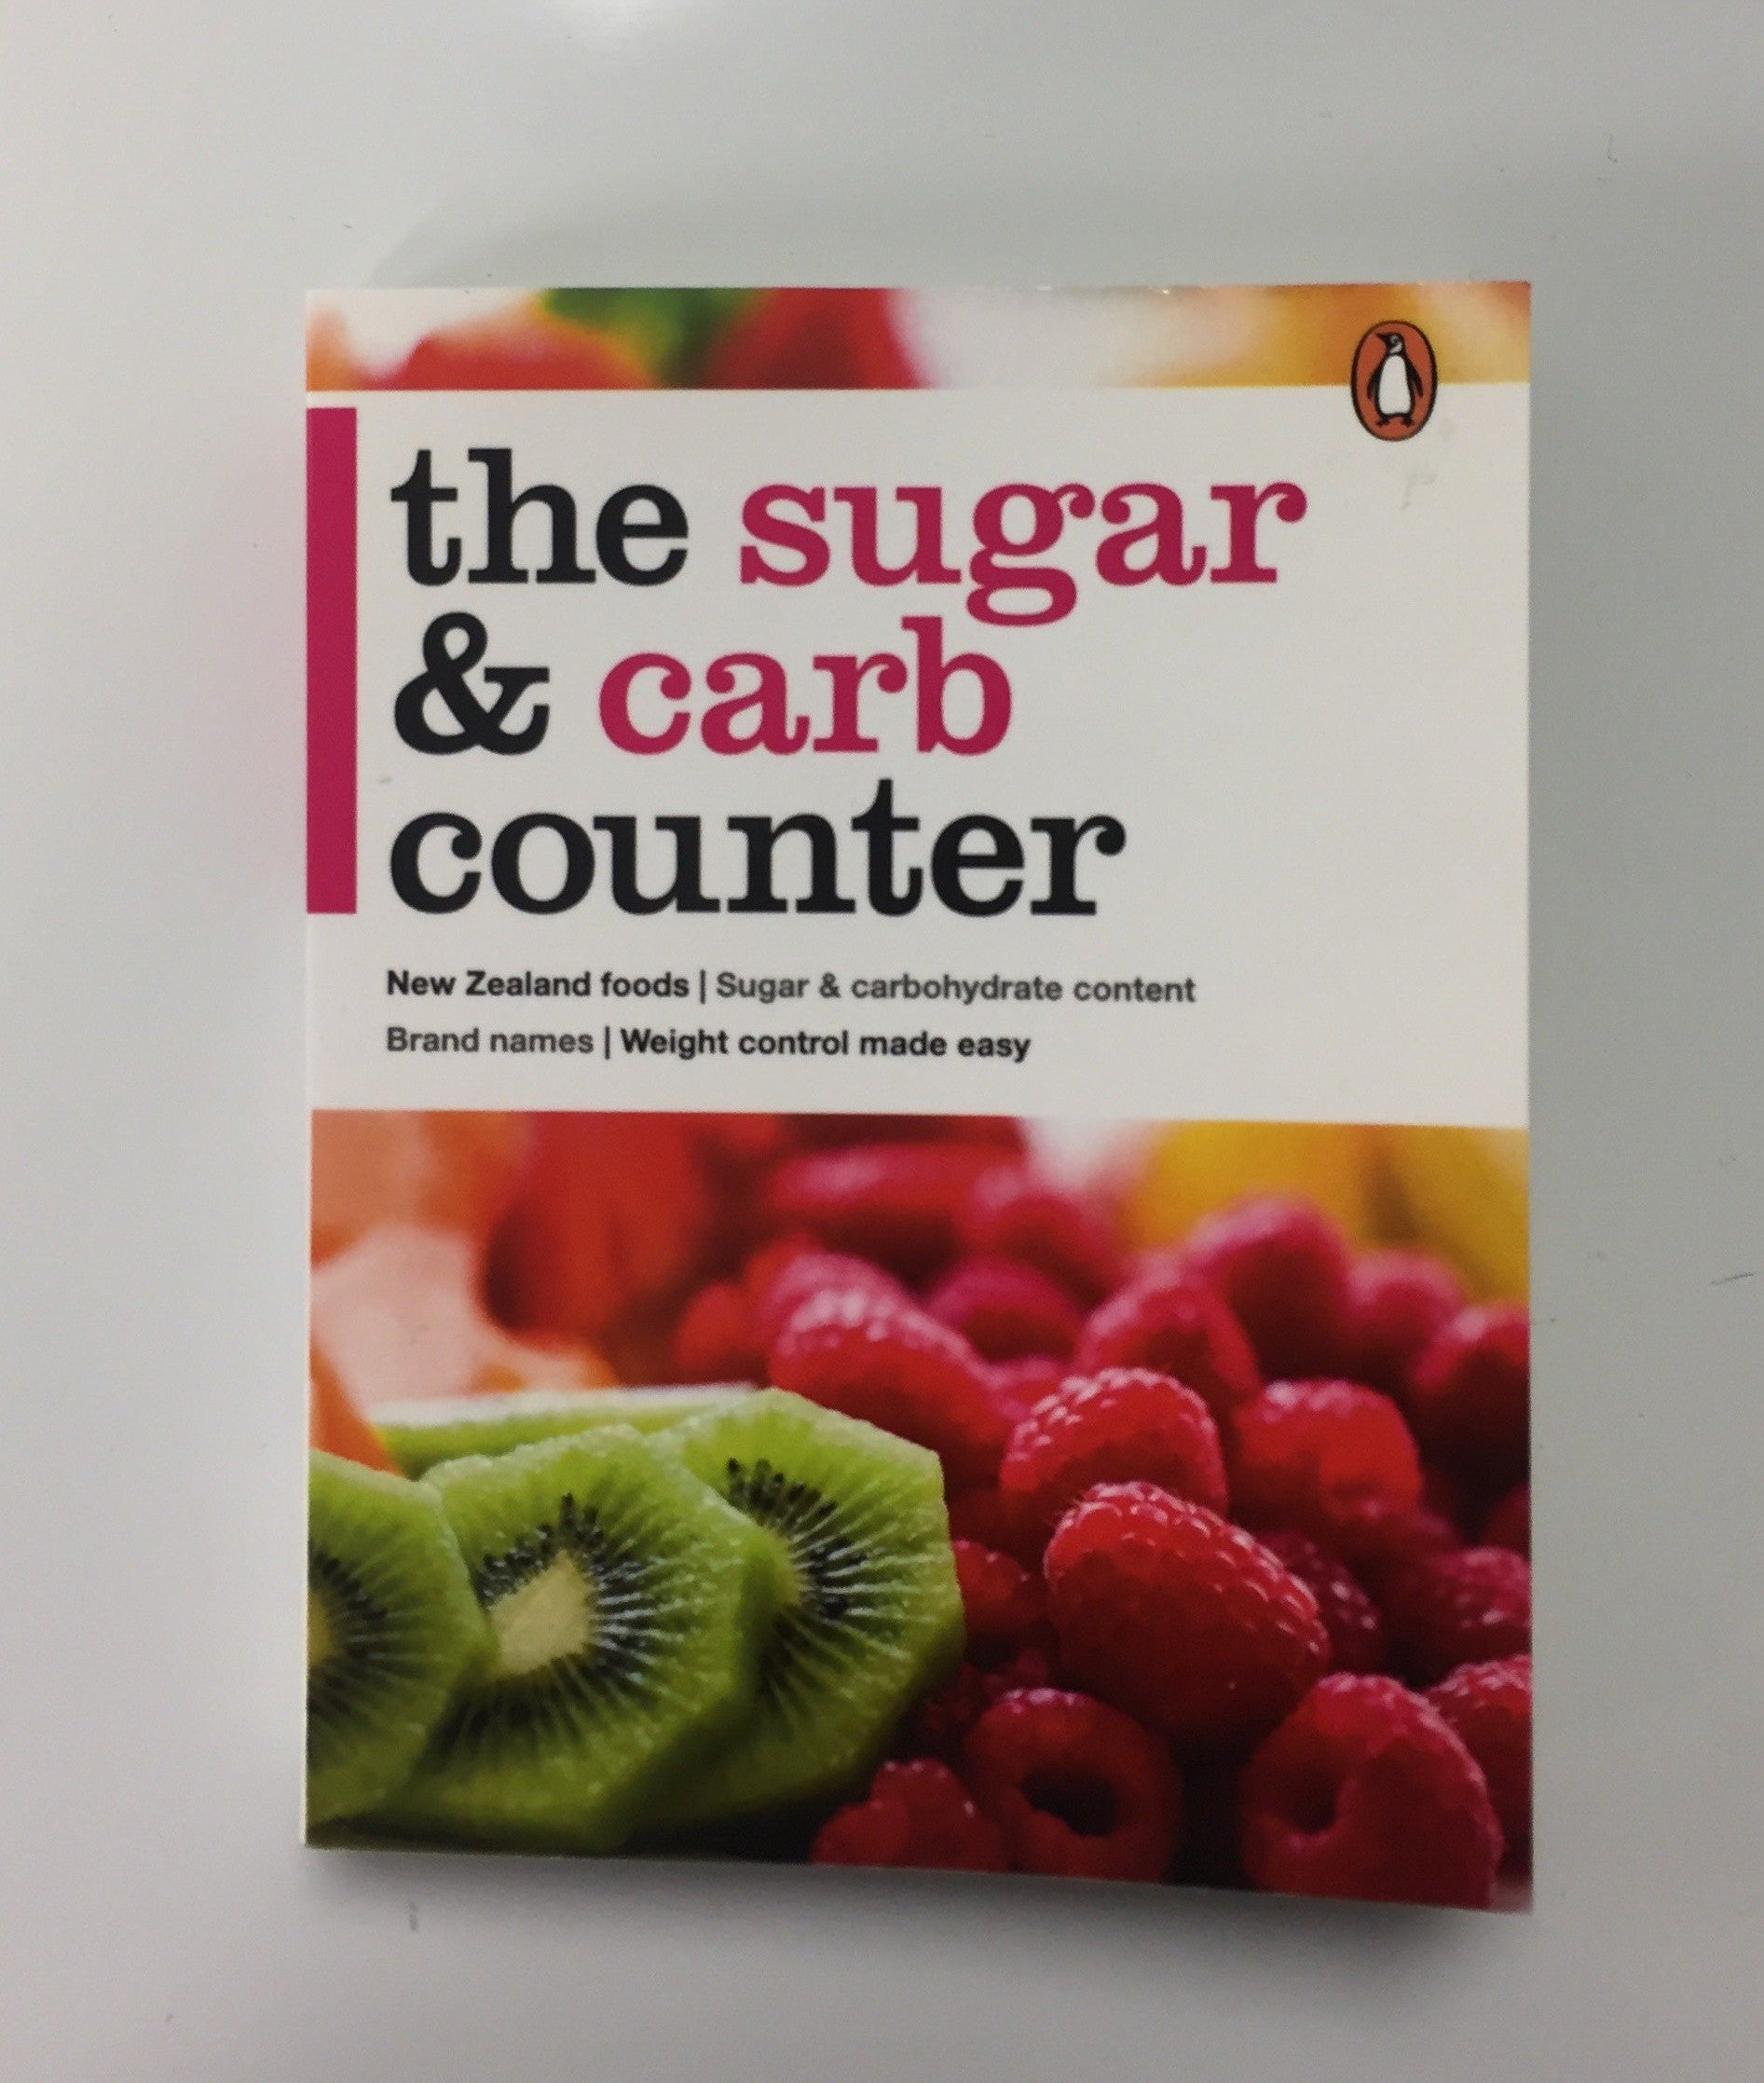 The Sugar & Carb Counter